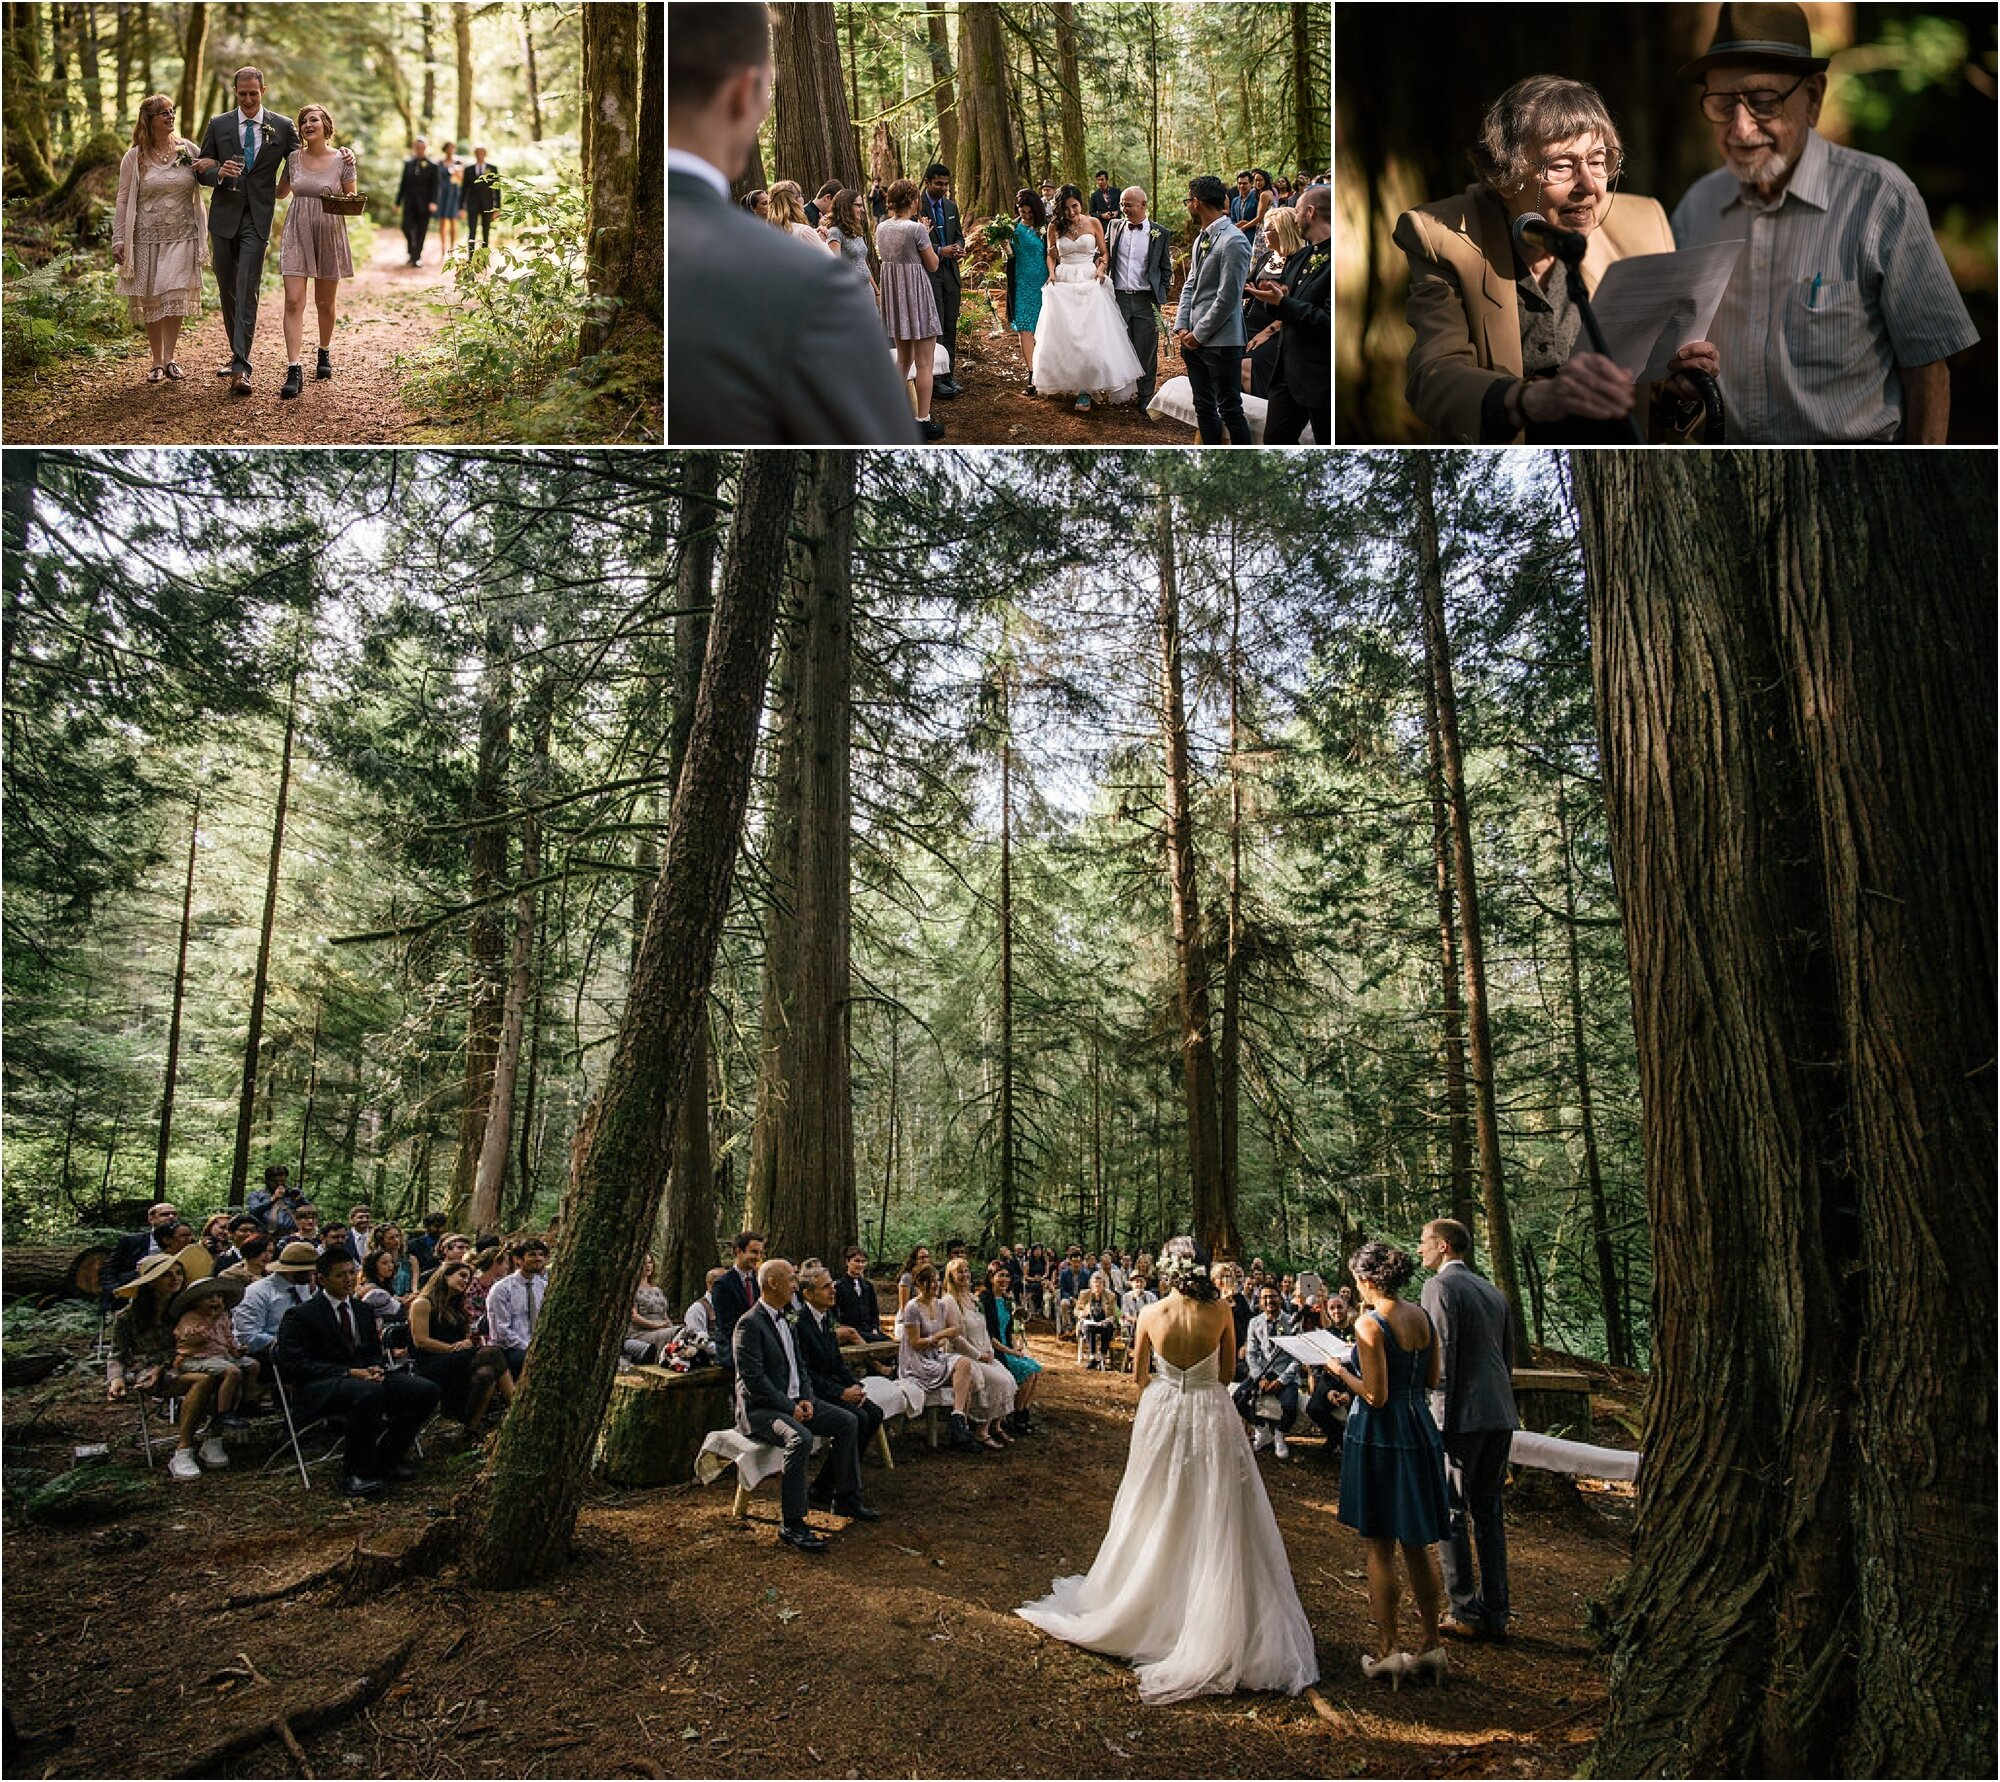 family and friends surround the couple as they exchange vows during campsite wedding in Washington state